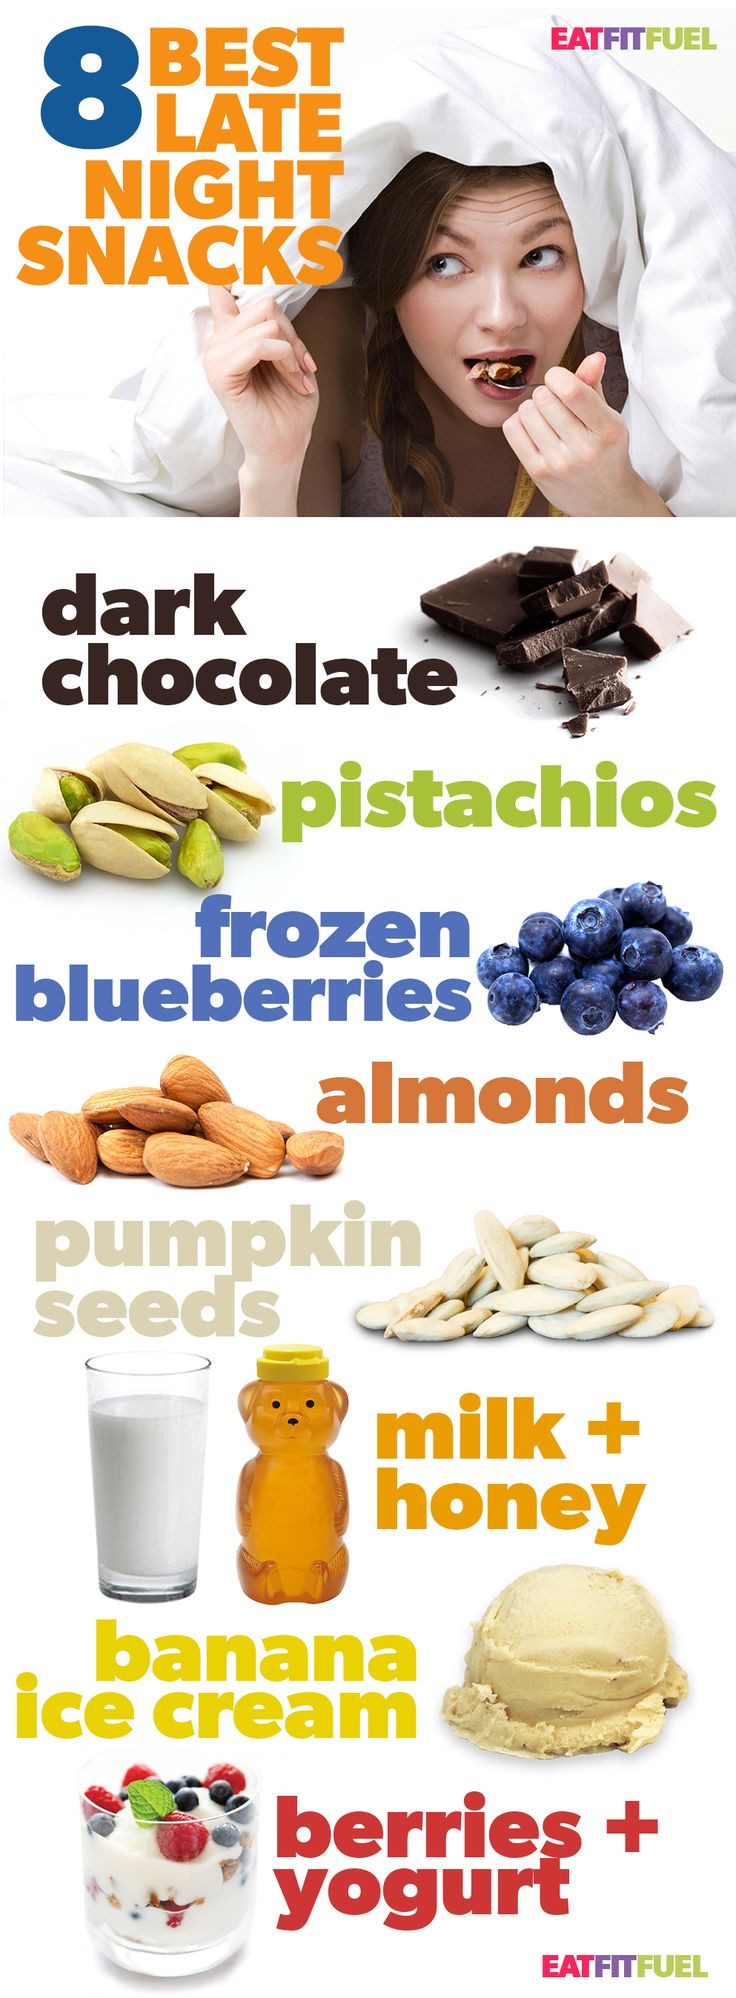 Healthy Snacks For Weight Loss At Night  healthy foods to eat at night to lose weight